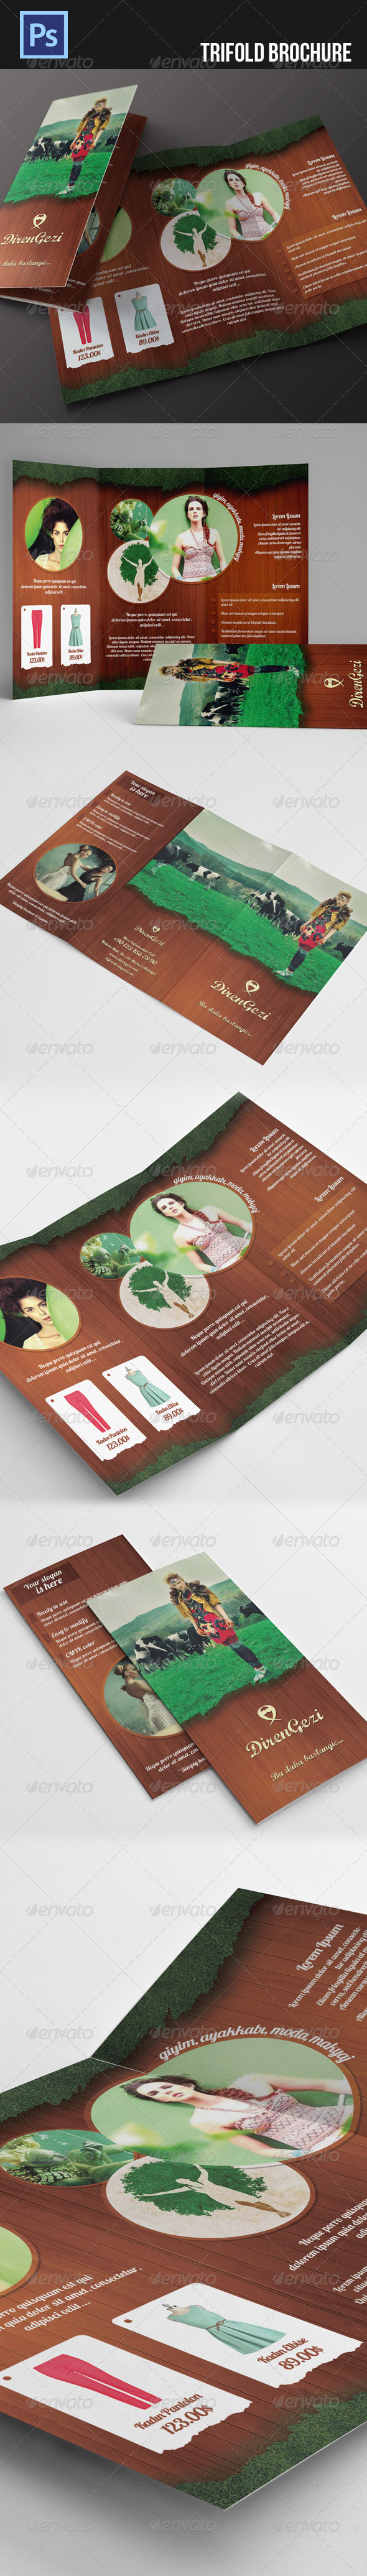 GraphicRiver Trifold Brochure 5295594